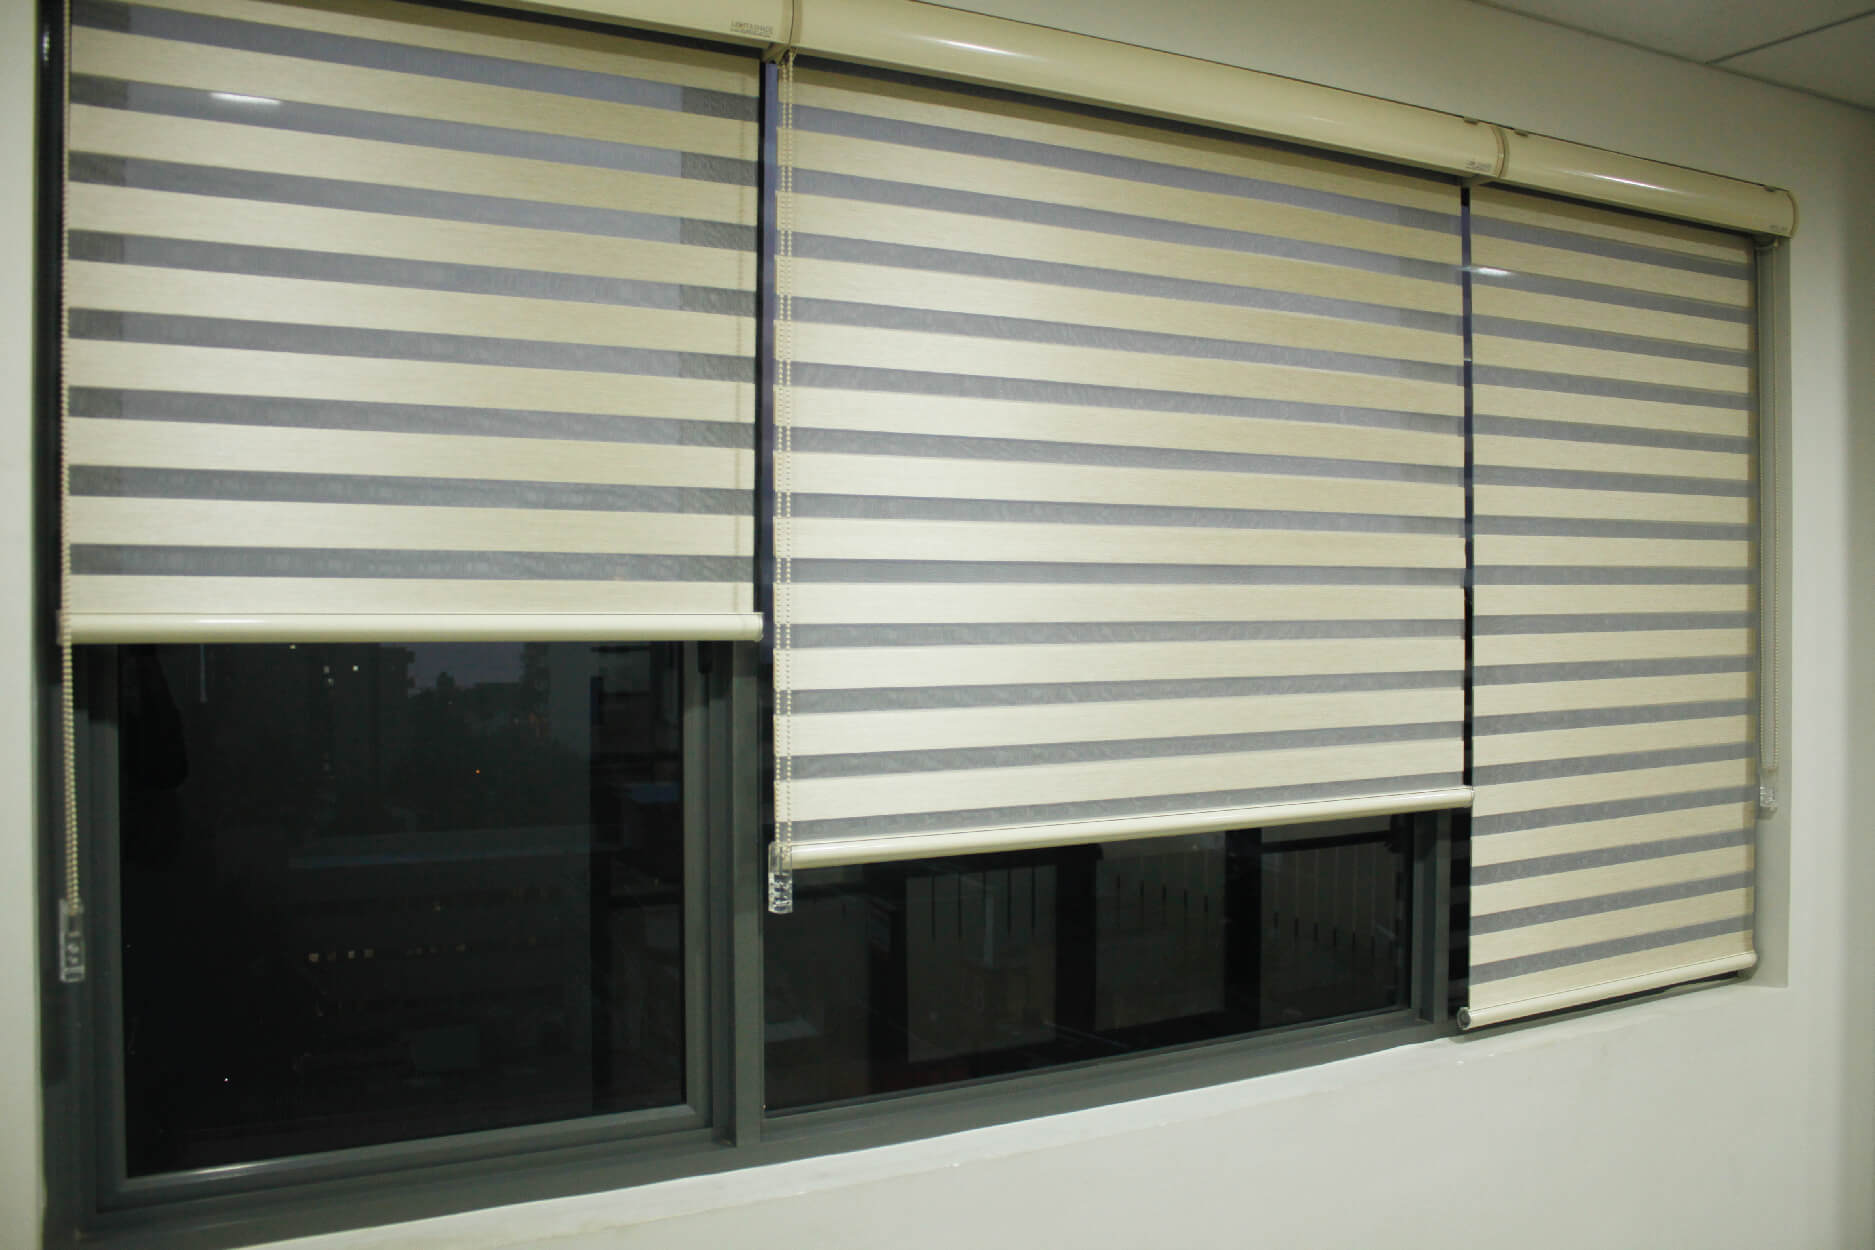 zebra blinds price india